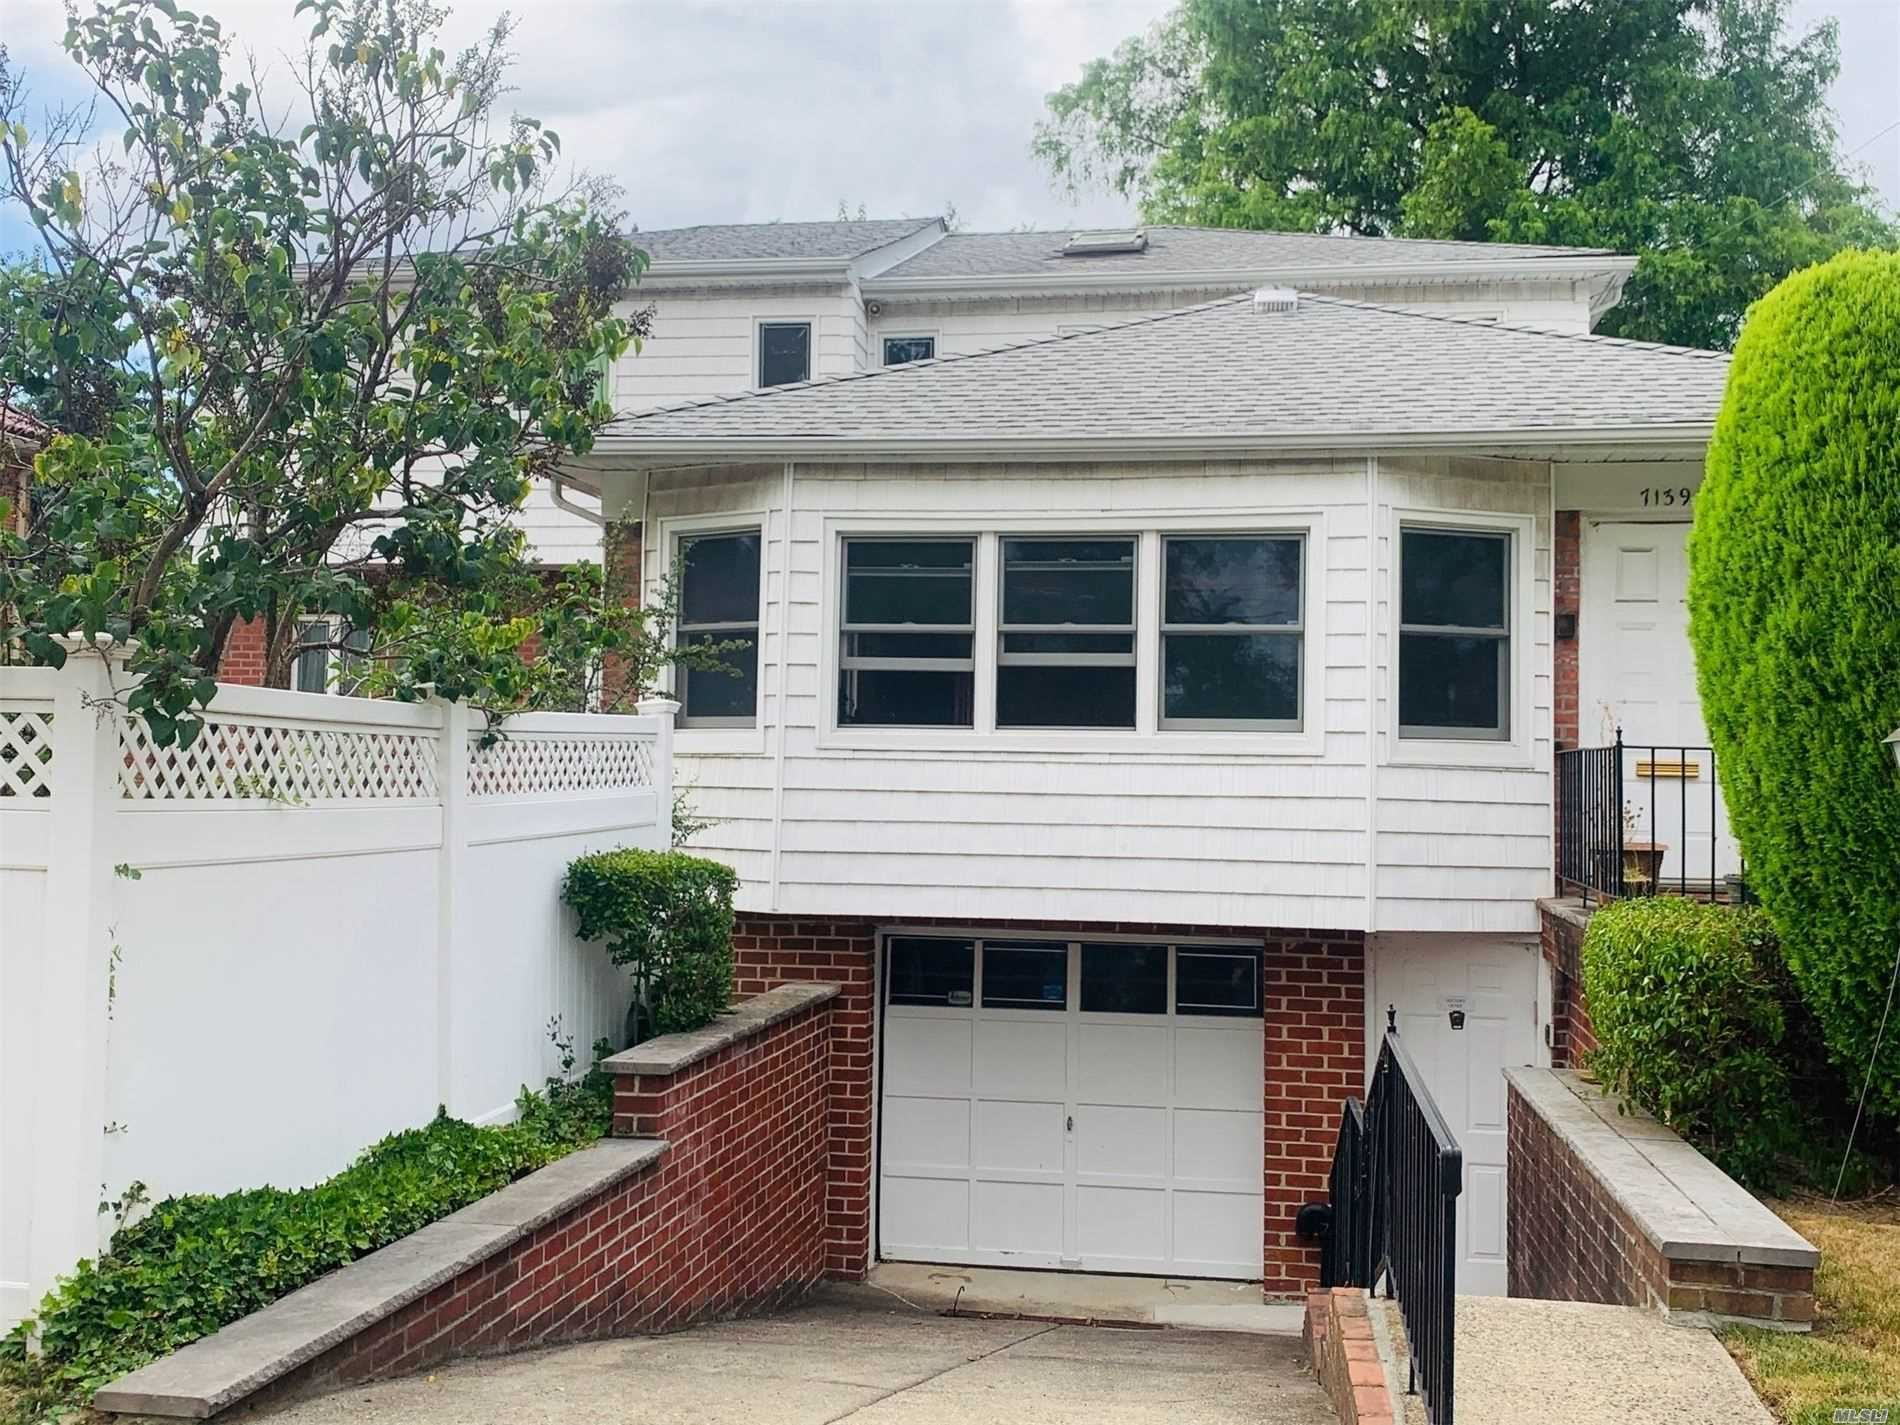 71-39 166 Street, Fresh Meadows, NY 11365 - MLS#: 3235796